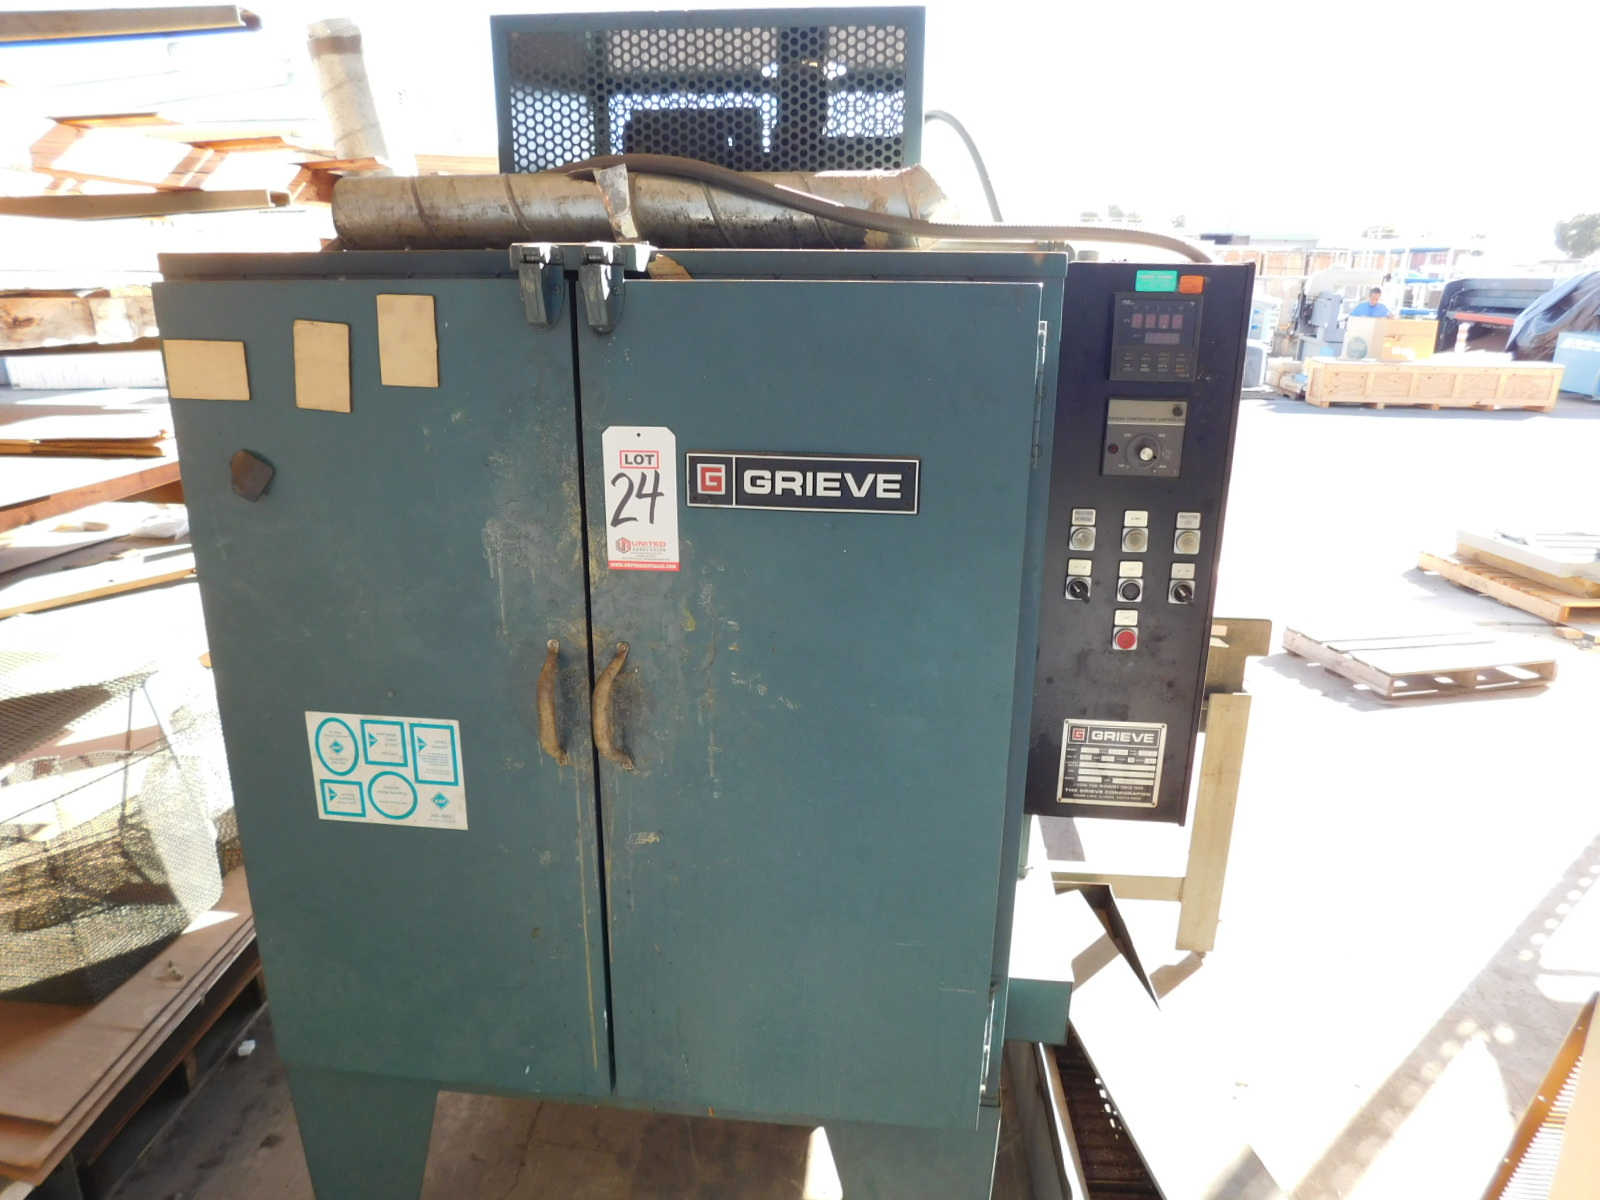 Lot 24 - GRIEVE MODEL 333 OVEN, ELECTRIC, 350°F, S/N 311253